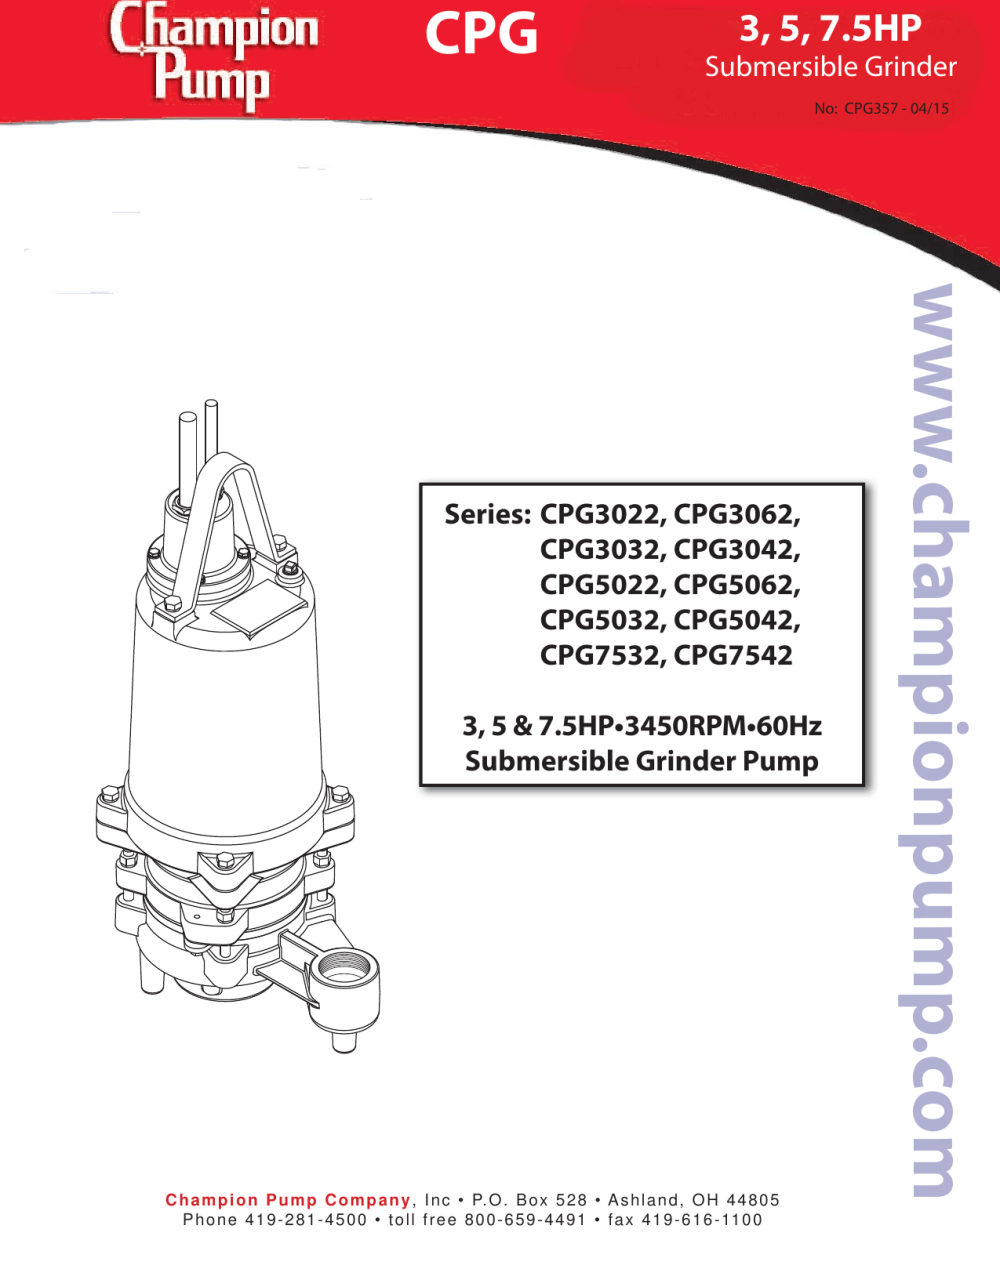 medium resolution of  wiring diagram champion pumps cpg 357 users manual cpg357 on bench grinder exhaust bench grinder safety